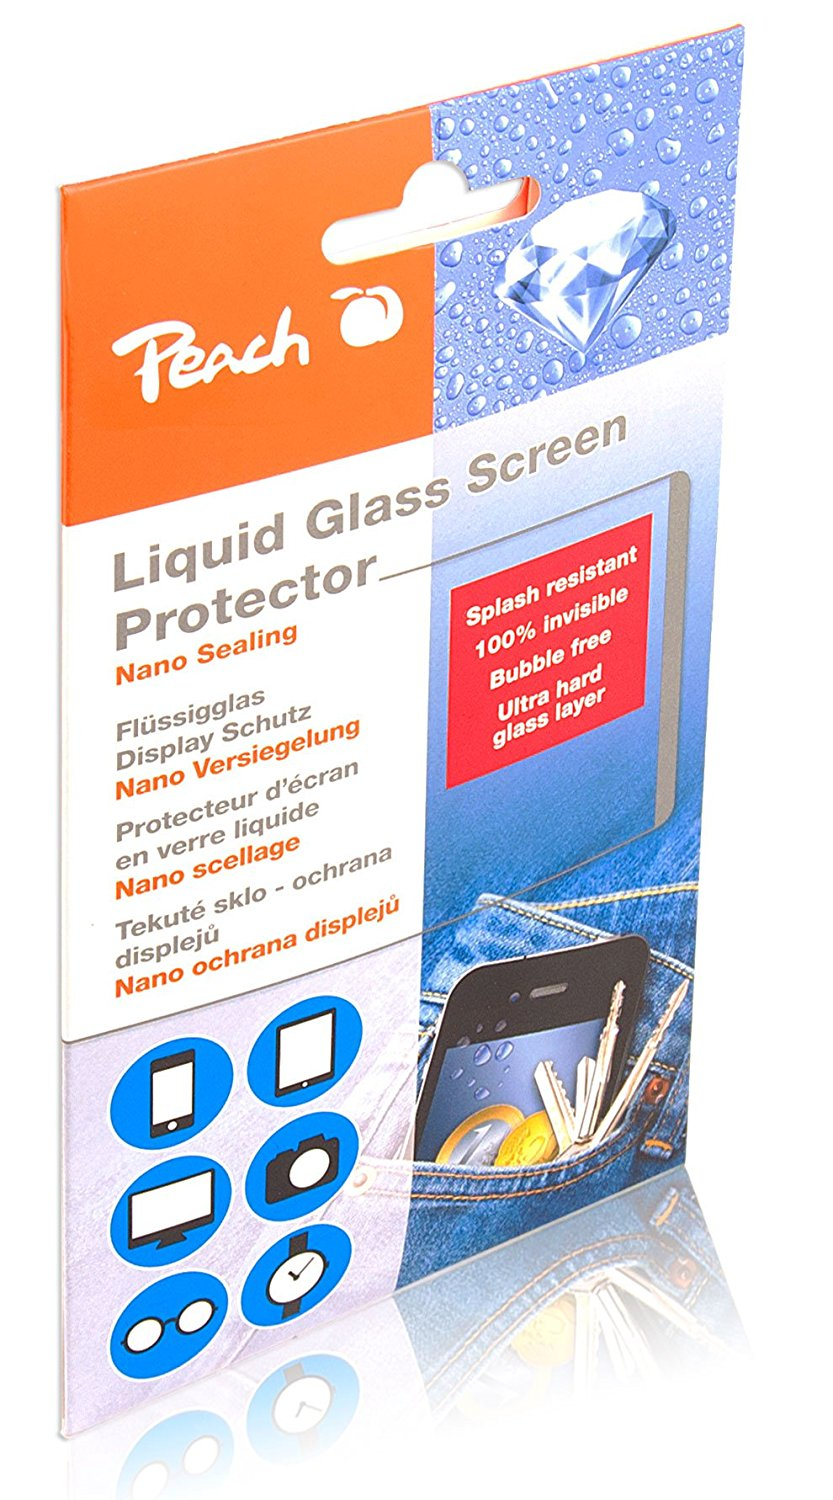 Peach Liquid Glass Display Schutz PA109